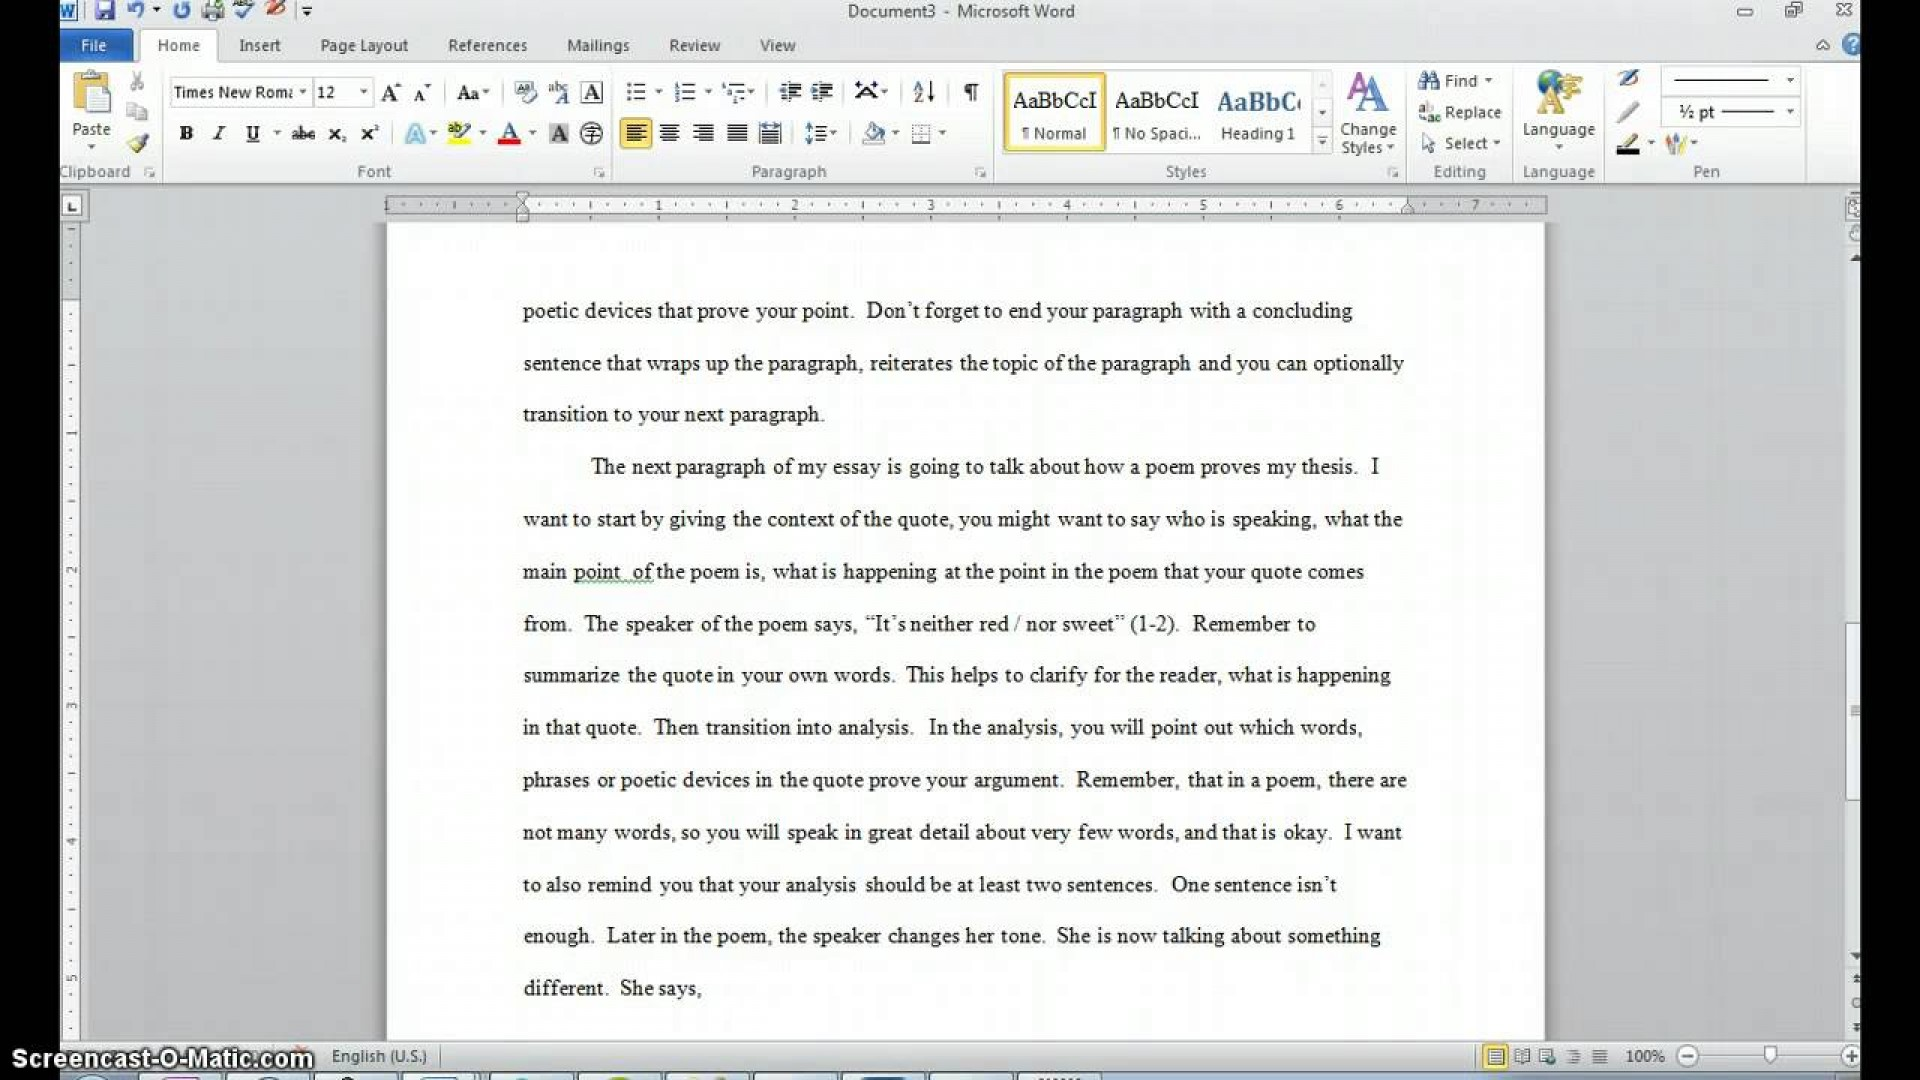 002 How To Quote Poem In An Essay Example Best A Lines From Mla Chicago Style 1920